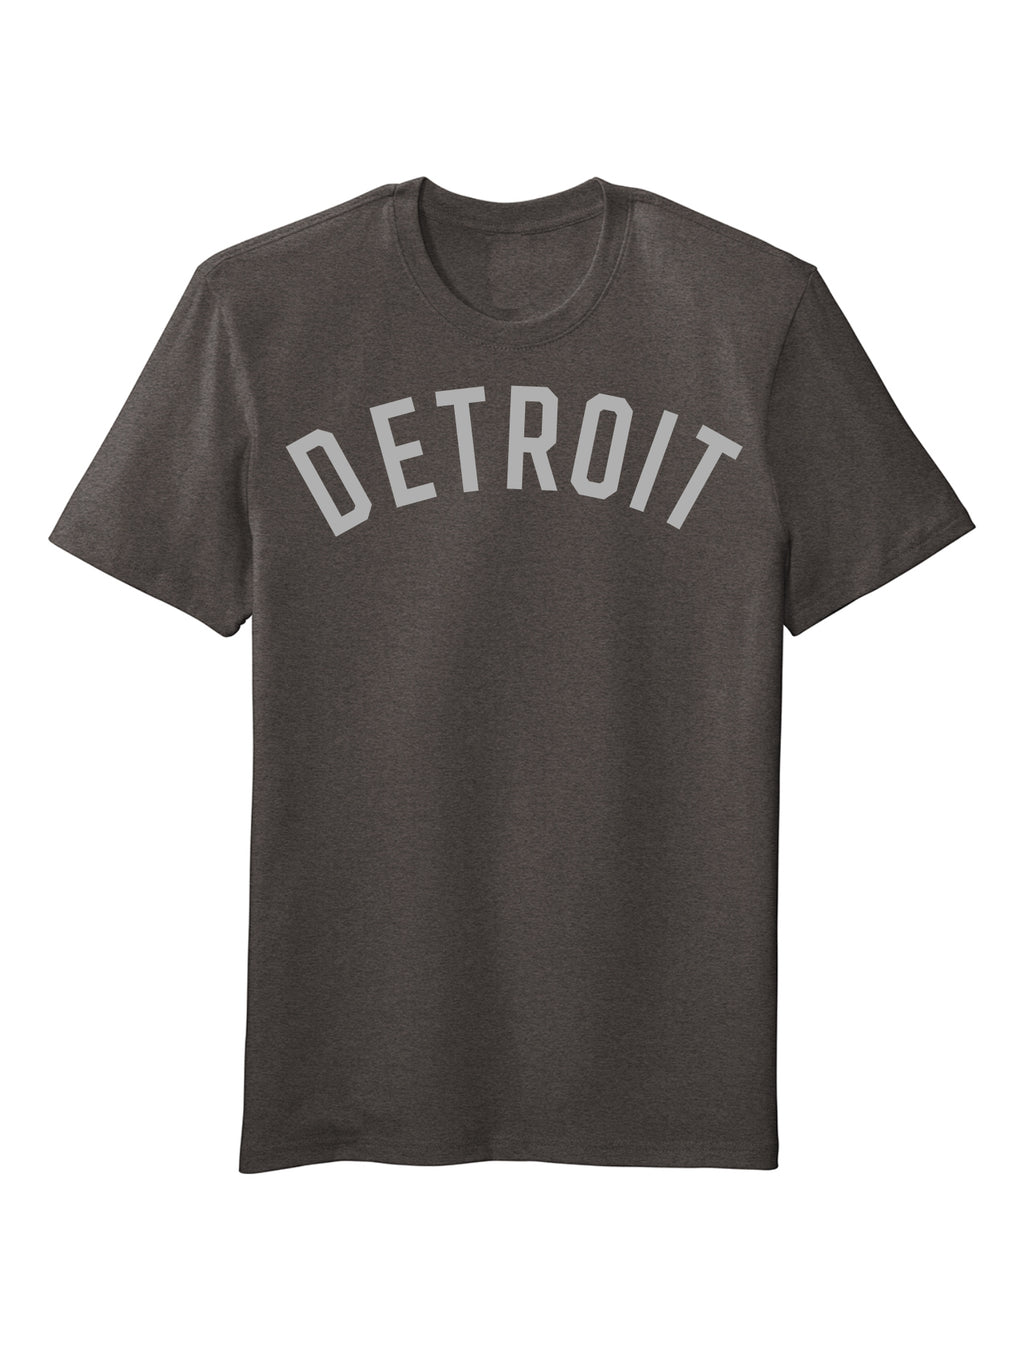 GREATEST DETROIT T-SHIRT EVER